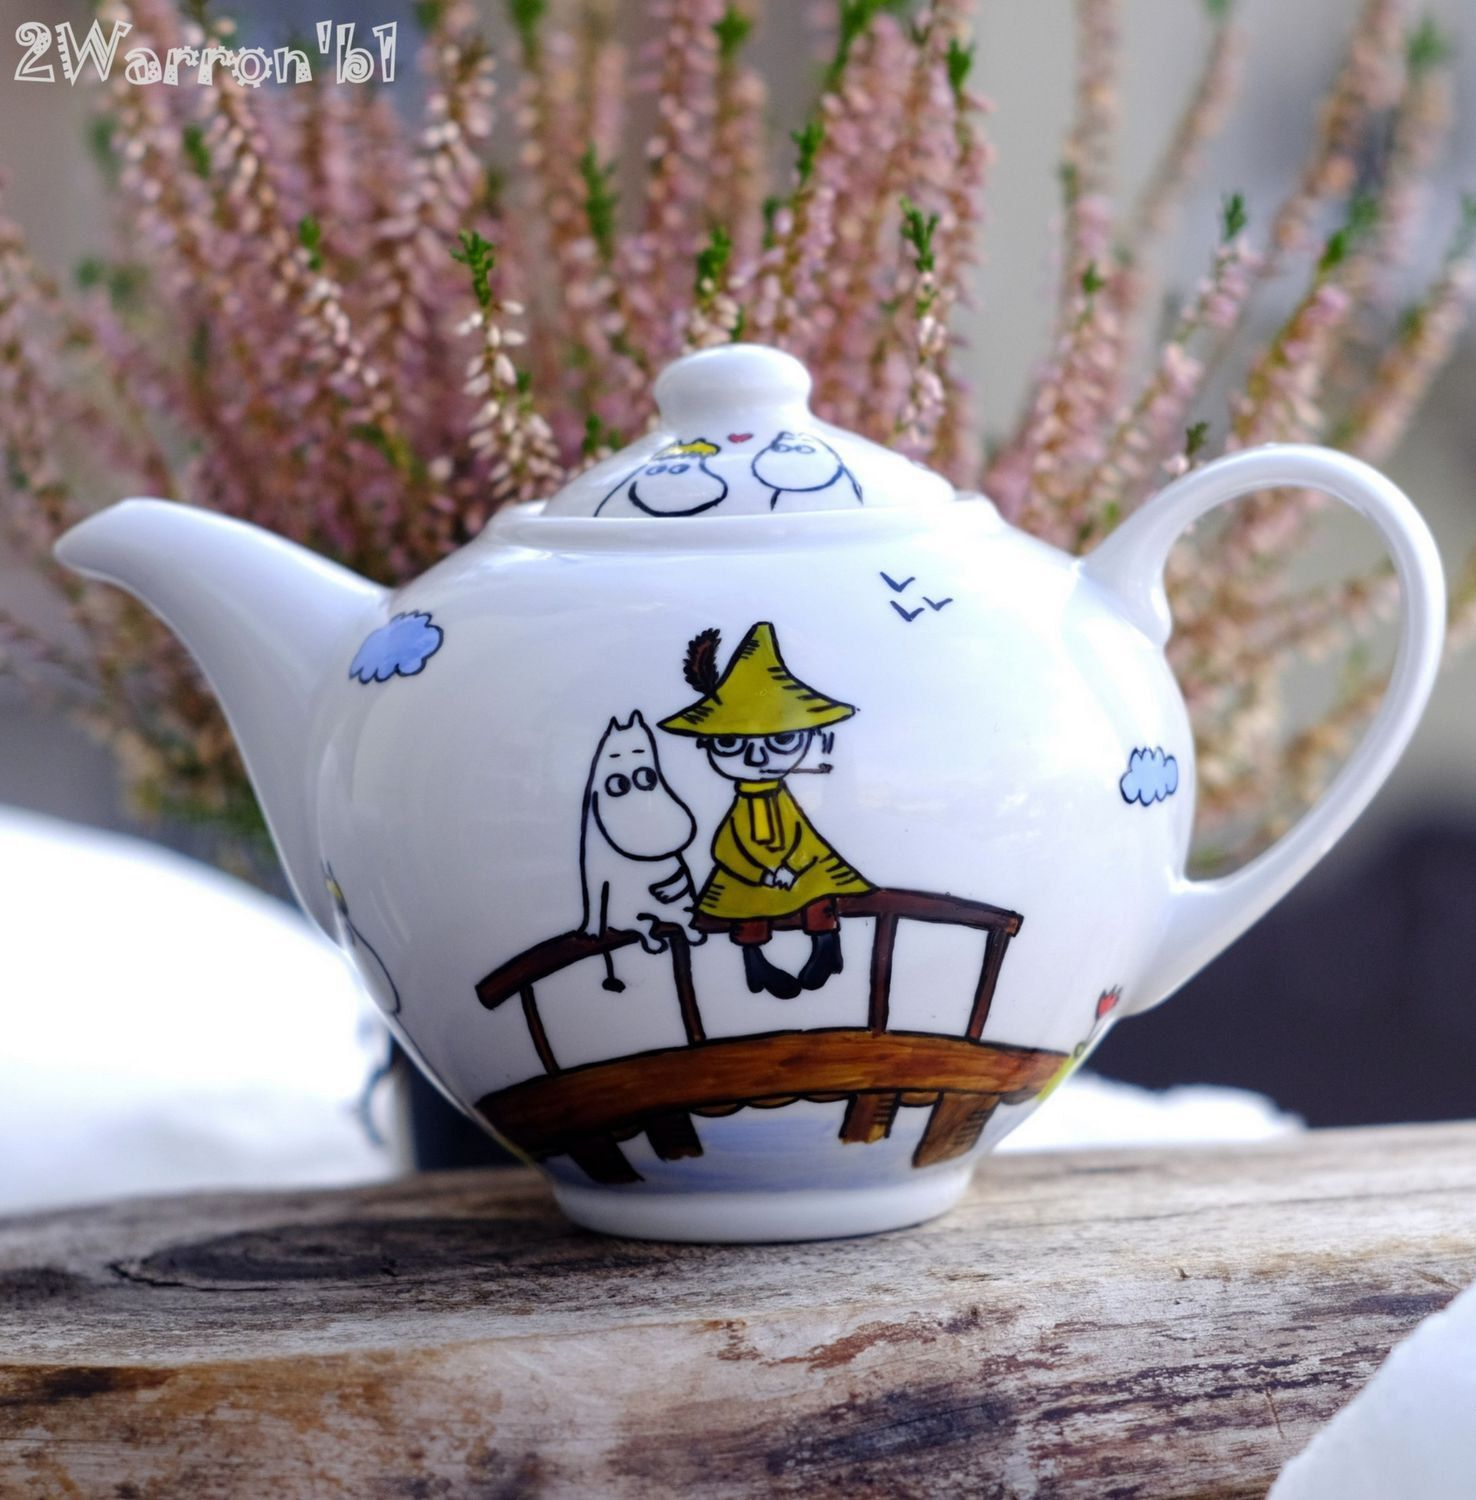 Making Tea In A Teapot Porcelain Handpainted Teapot Фарфоровый заварочный